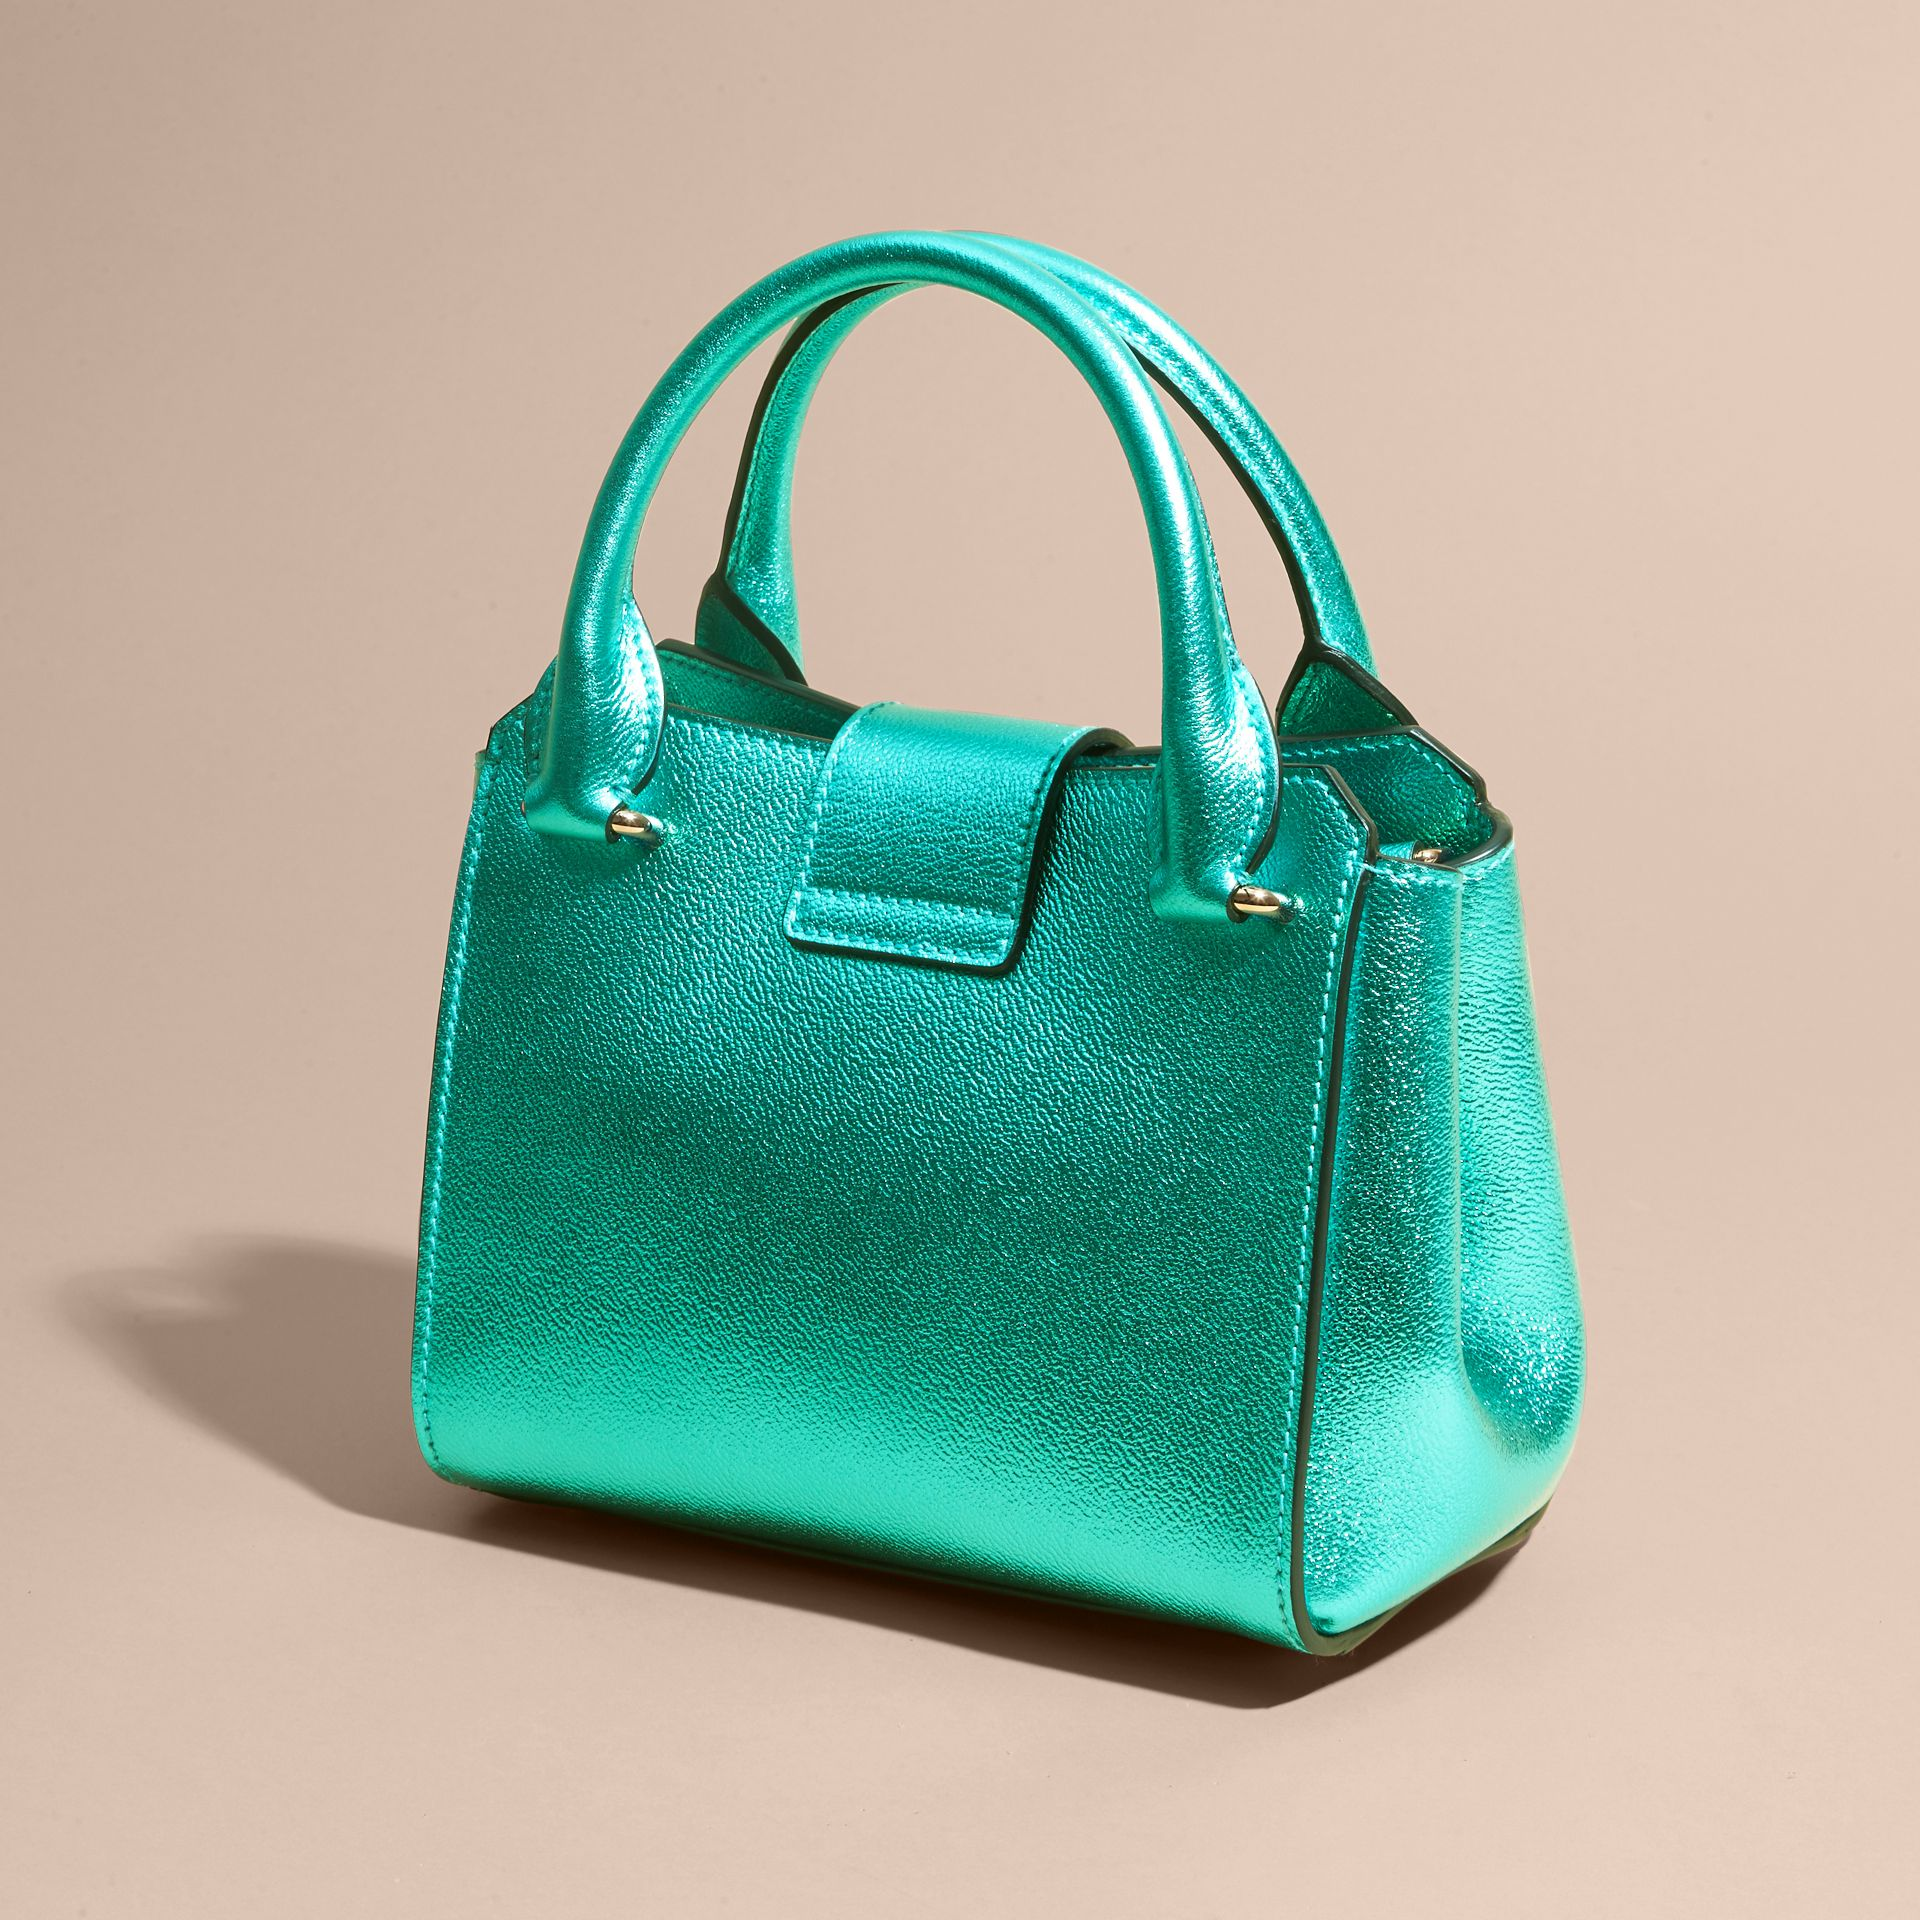 The Small Buckle Tote in Metallic Leather in Emerald - gallery image 7